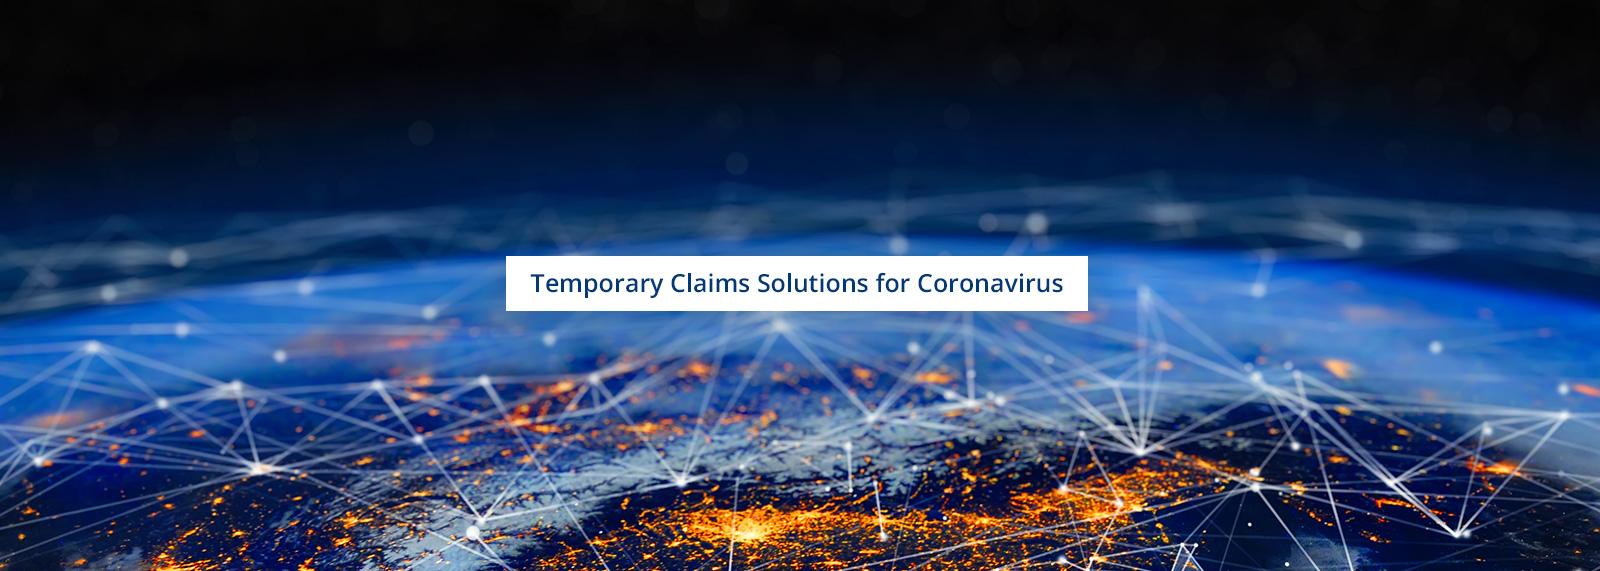 Temporary Claims Solutions for Coronavirus at Robertson and Co - Investigation and intelligence services